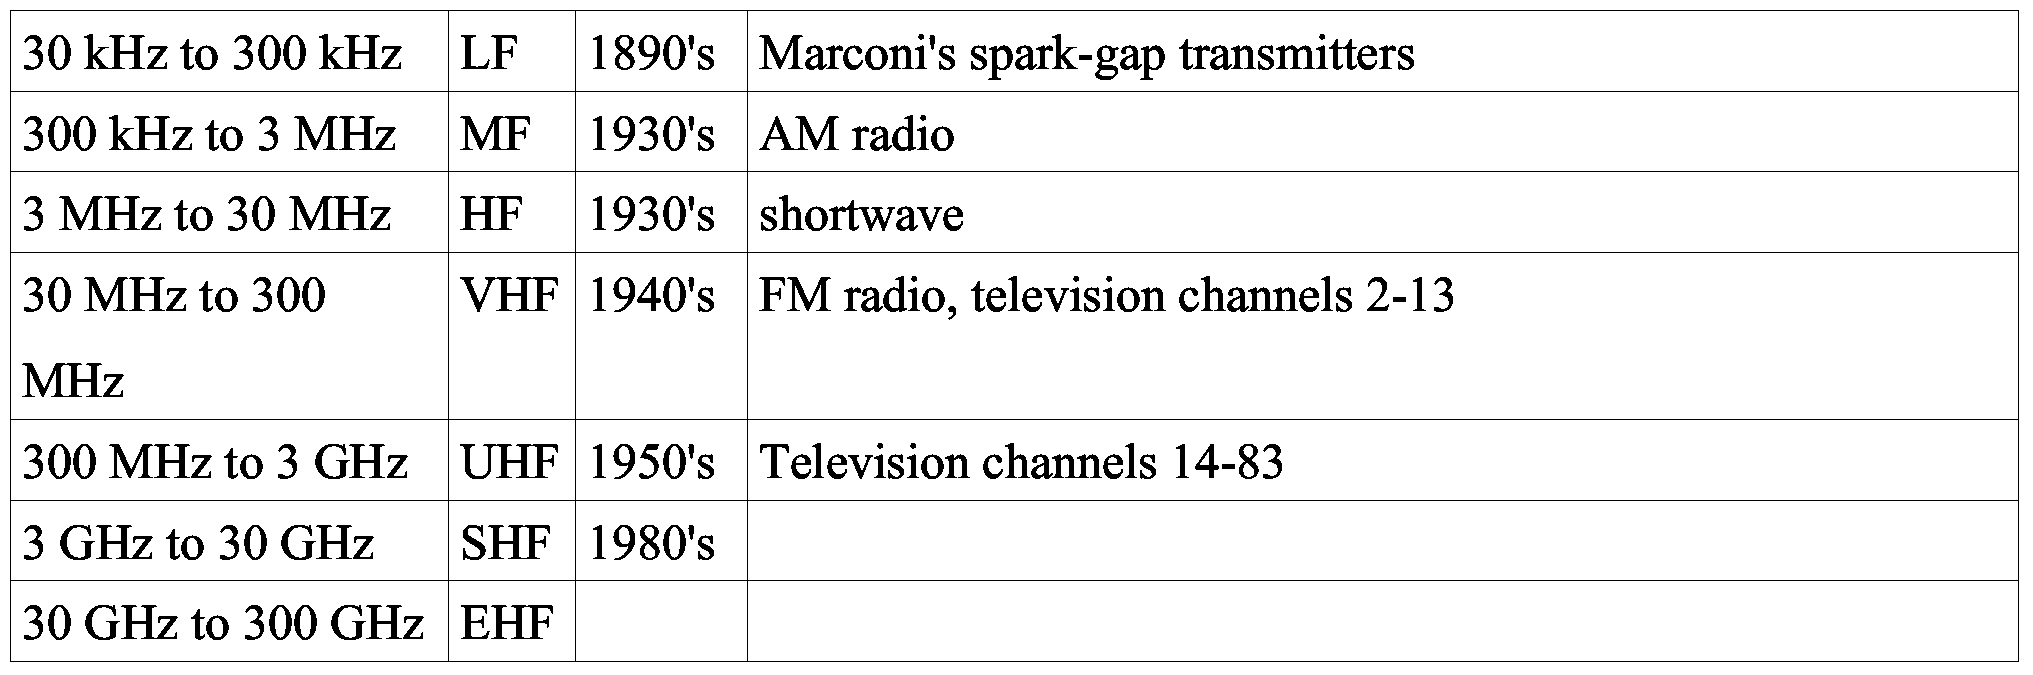 WO2006085291A2 - Low frequency tag and system - Google Patents